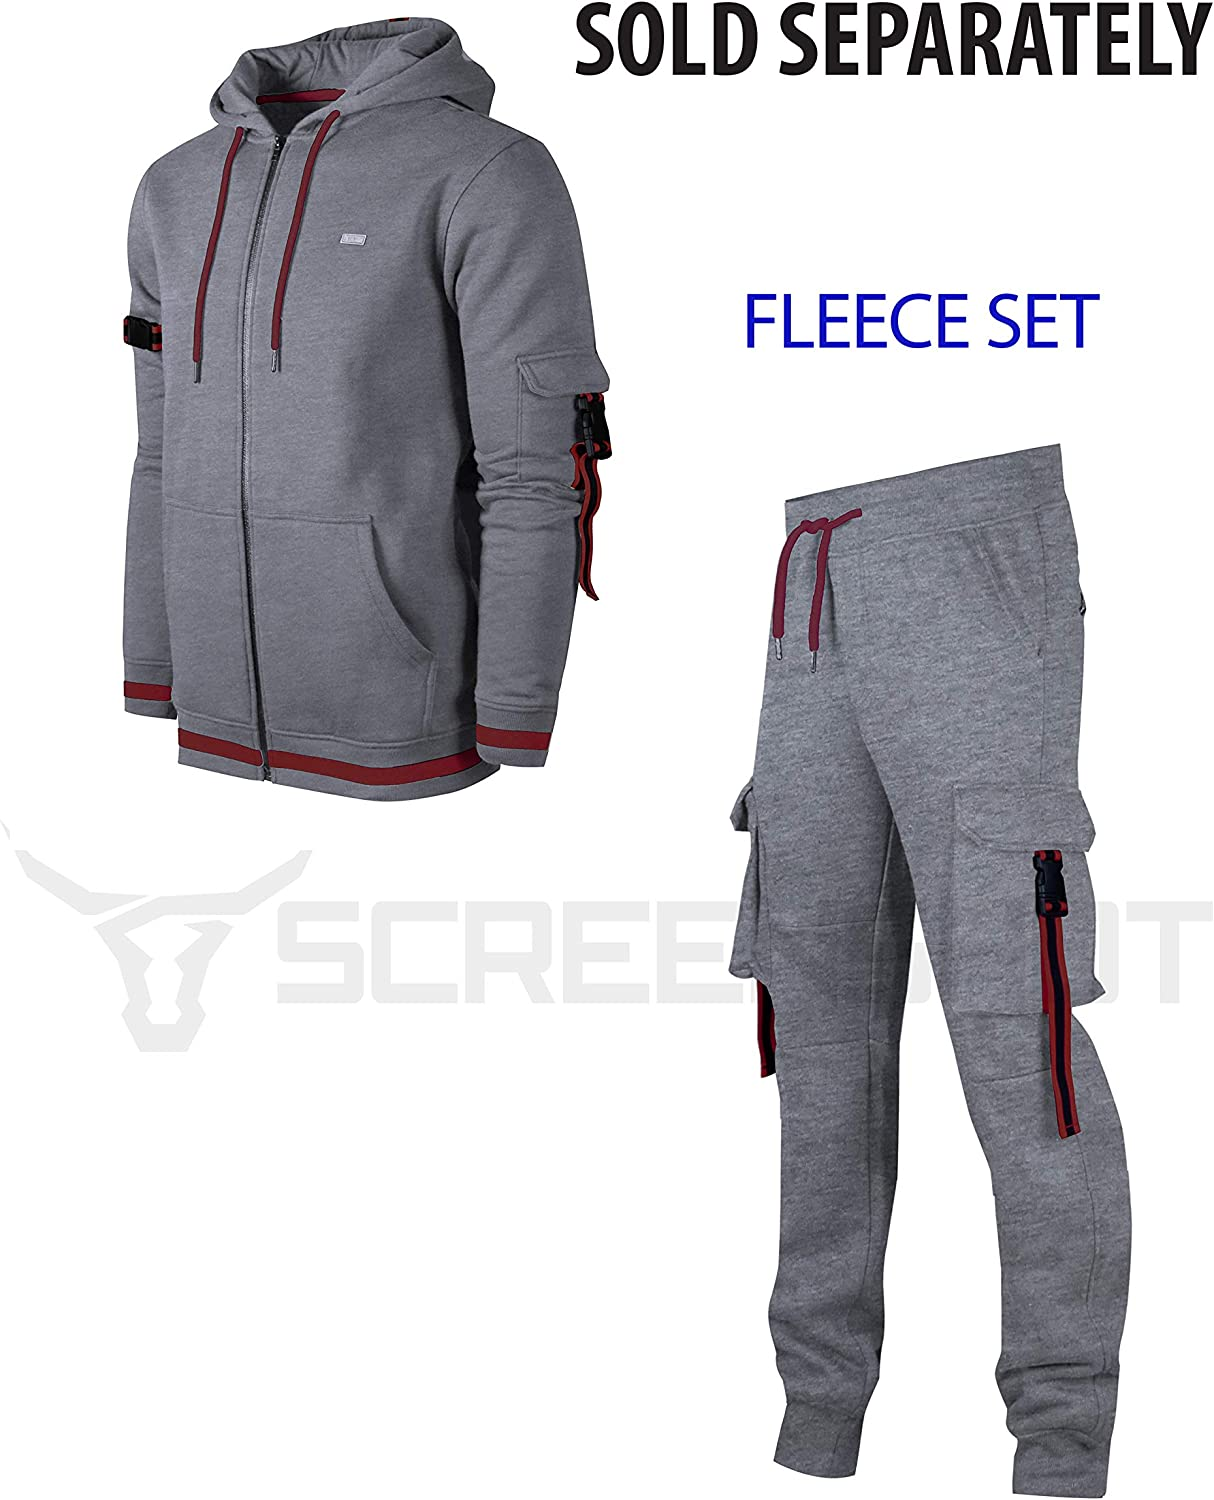 SCREENSHOT Sports Mens Premium TechFleece Fashion Hoodie Athletic Jogger Fitness Workout Gym Jacket